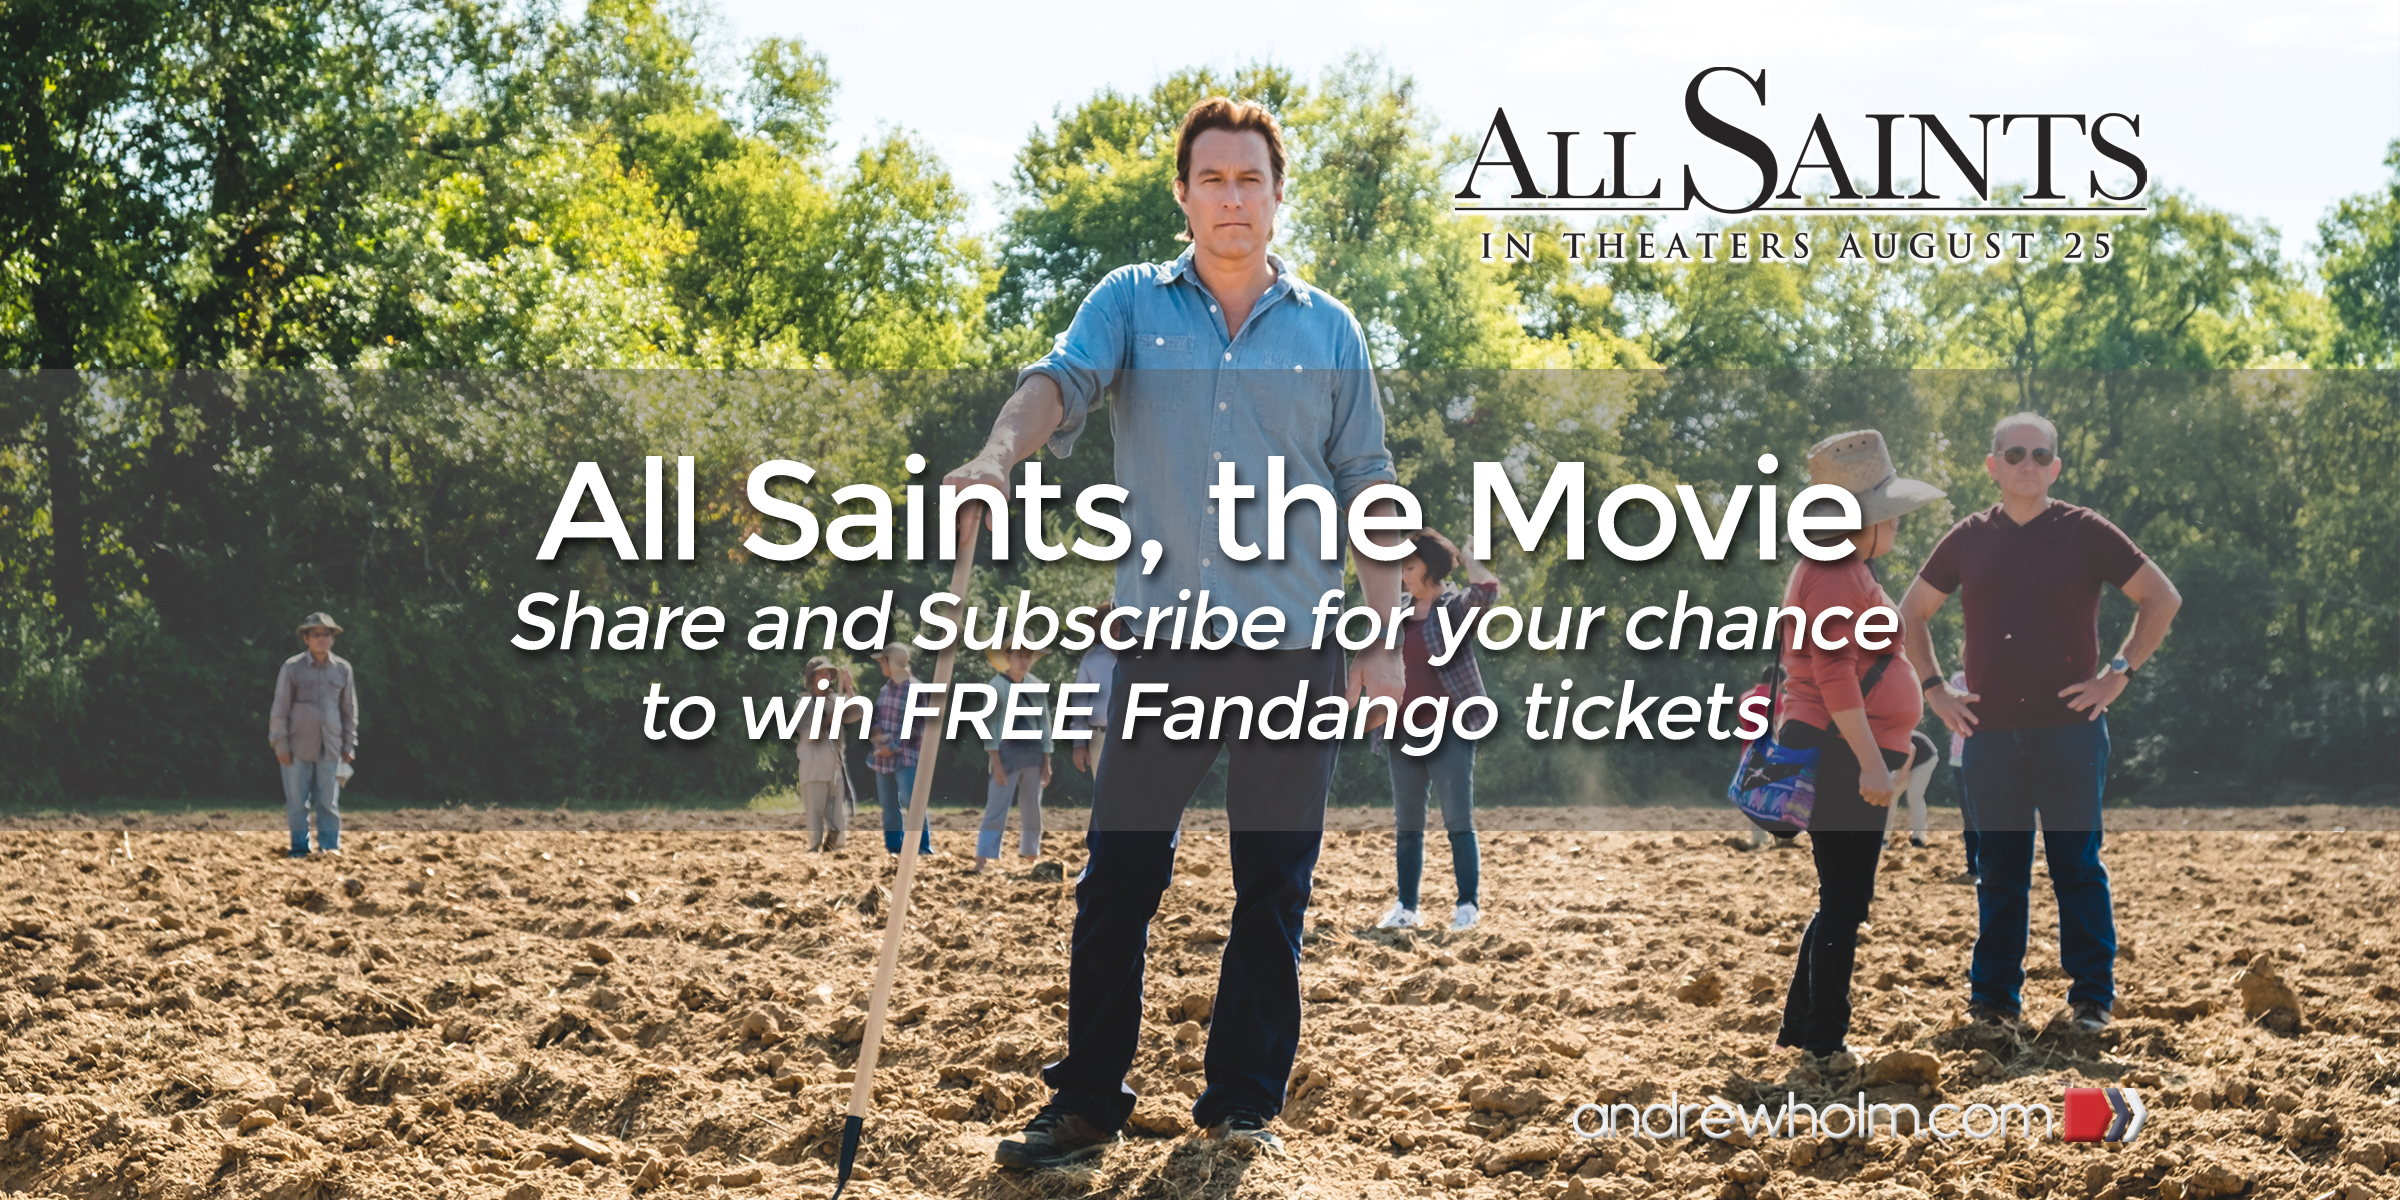 REVIEW - All Saints Contest